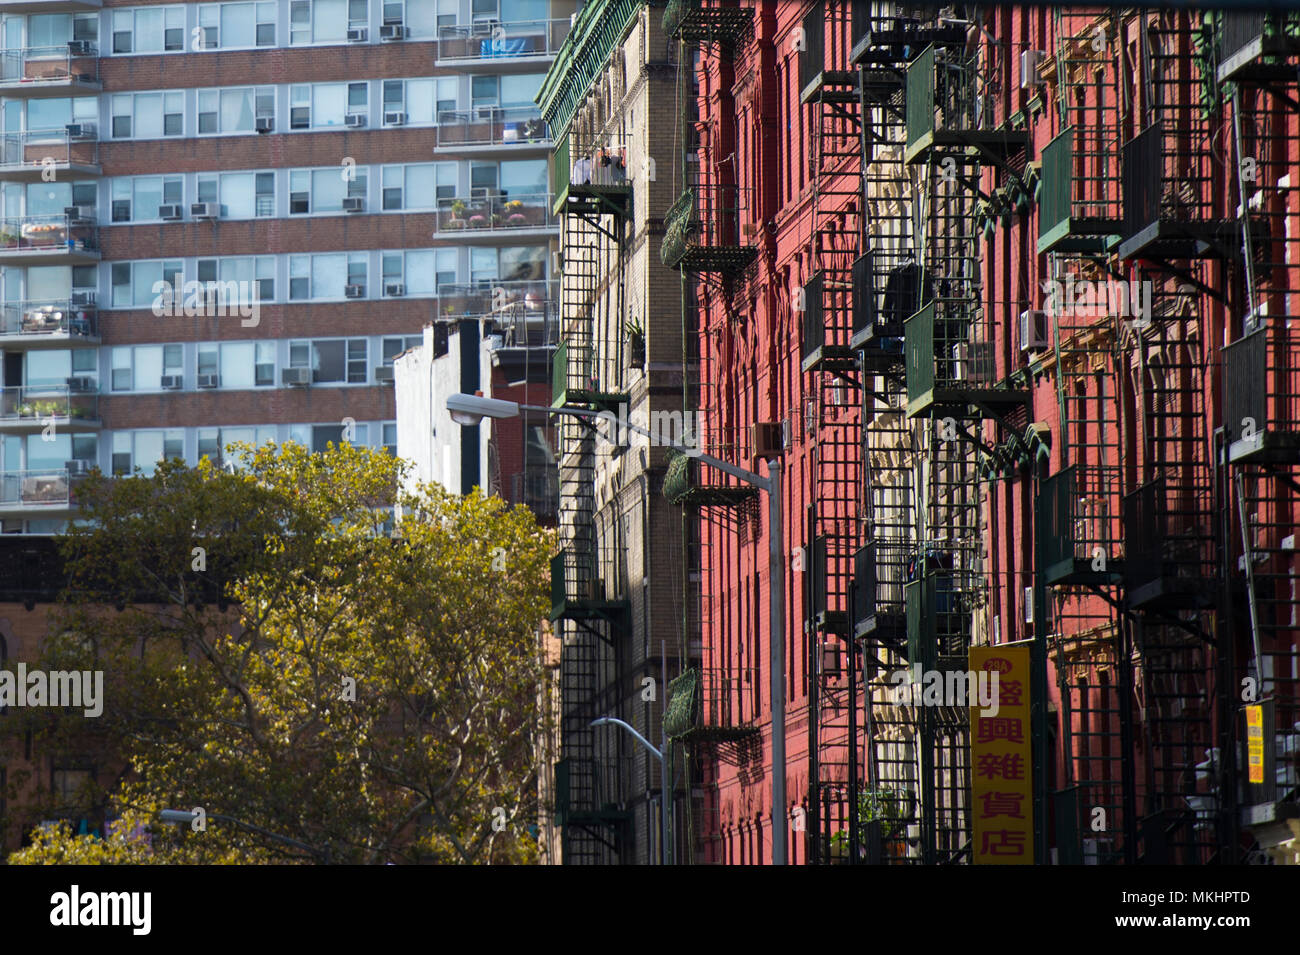 NEW YORK - USA- 28 OCTOBER 2018. Close-up view of New York City style apartment buildings with emergency stairs along Mott Street in Chinatown - Stock Image